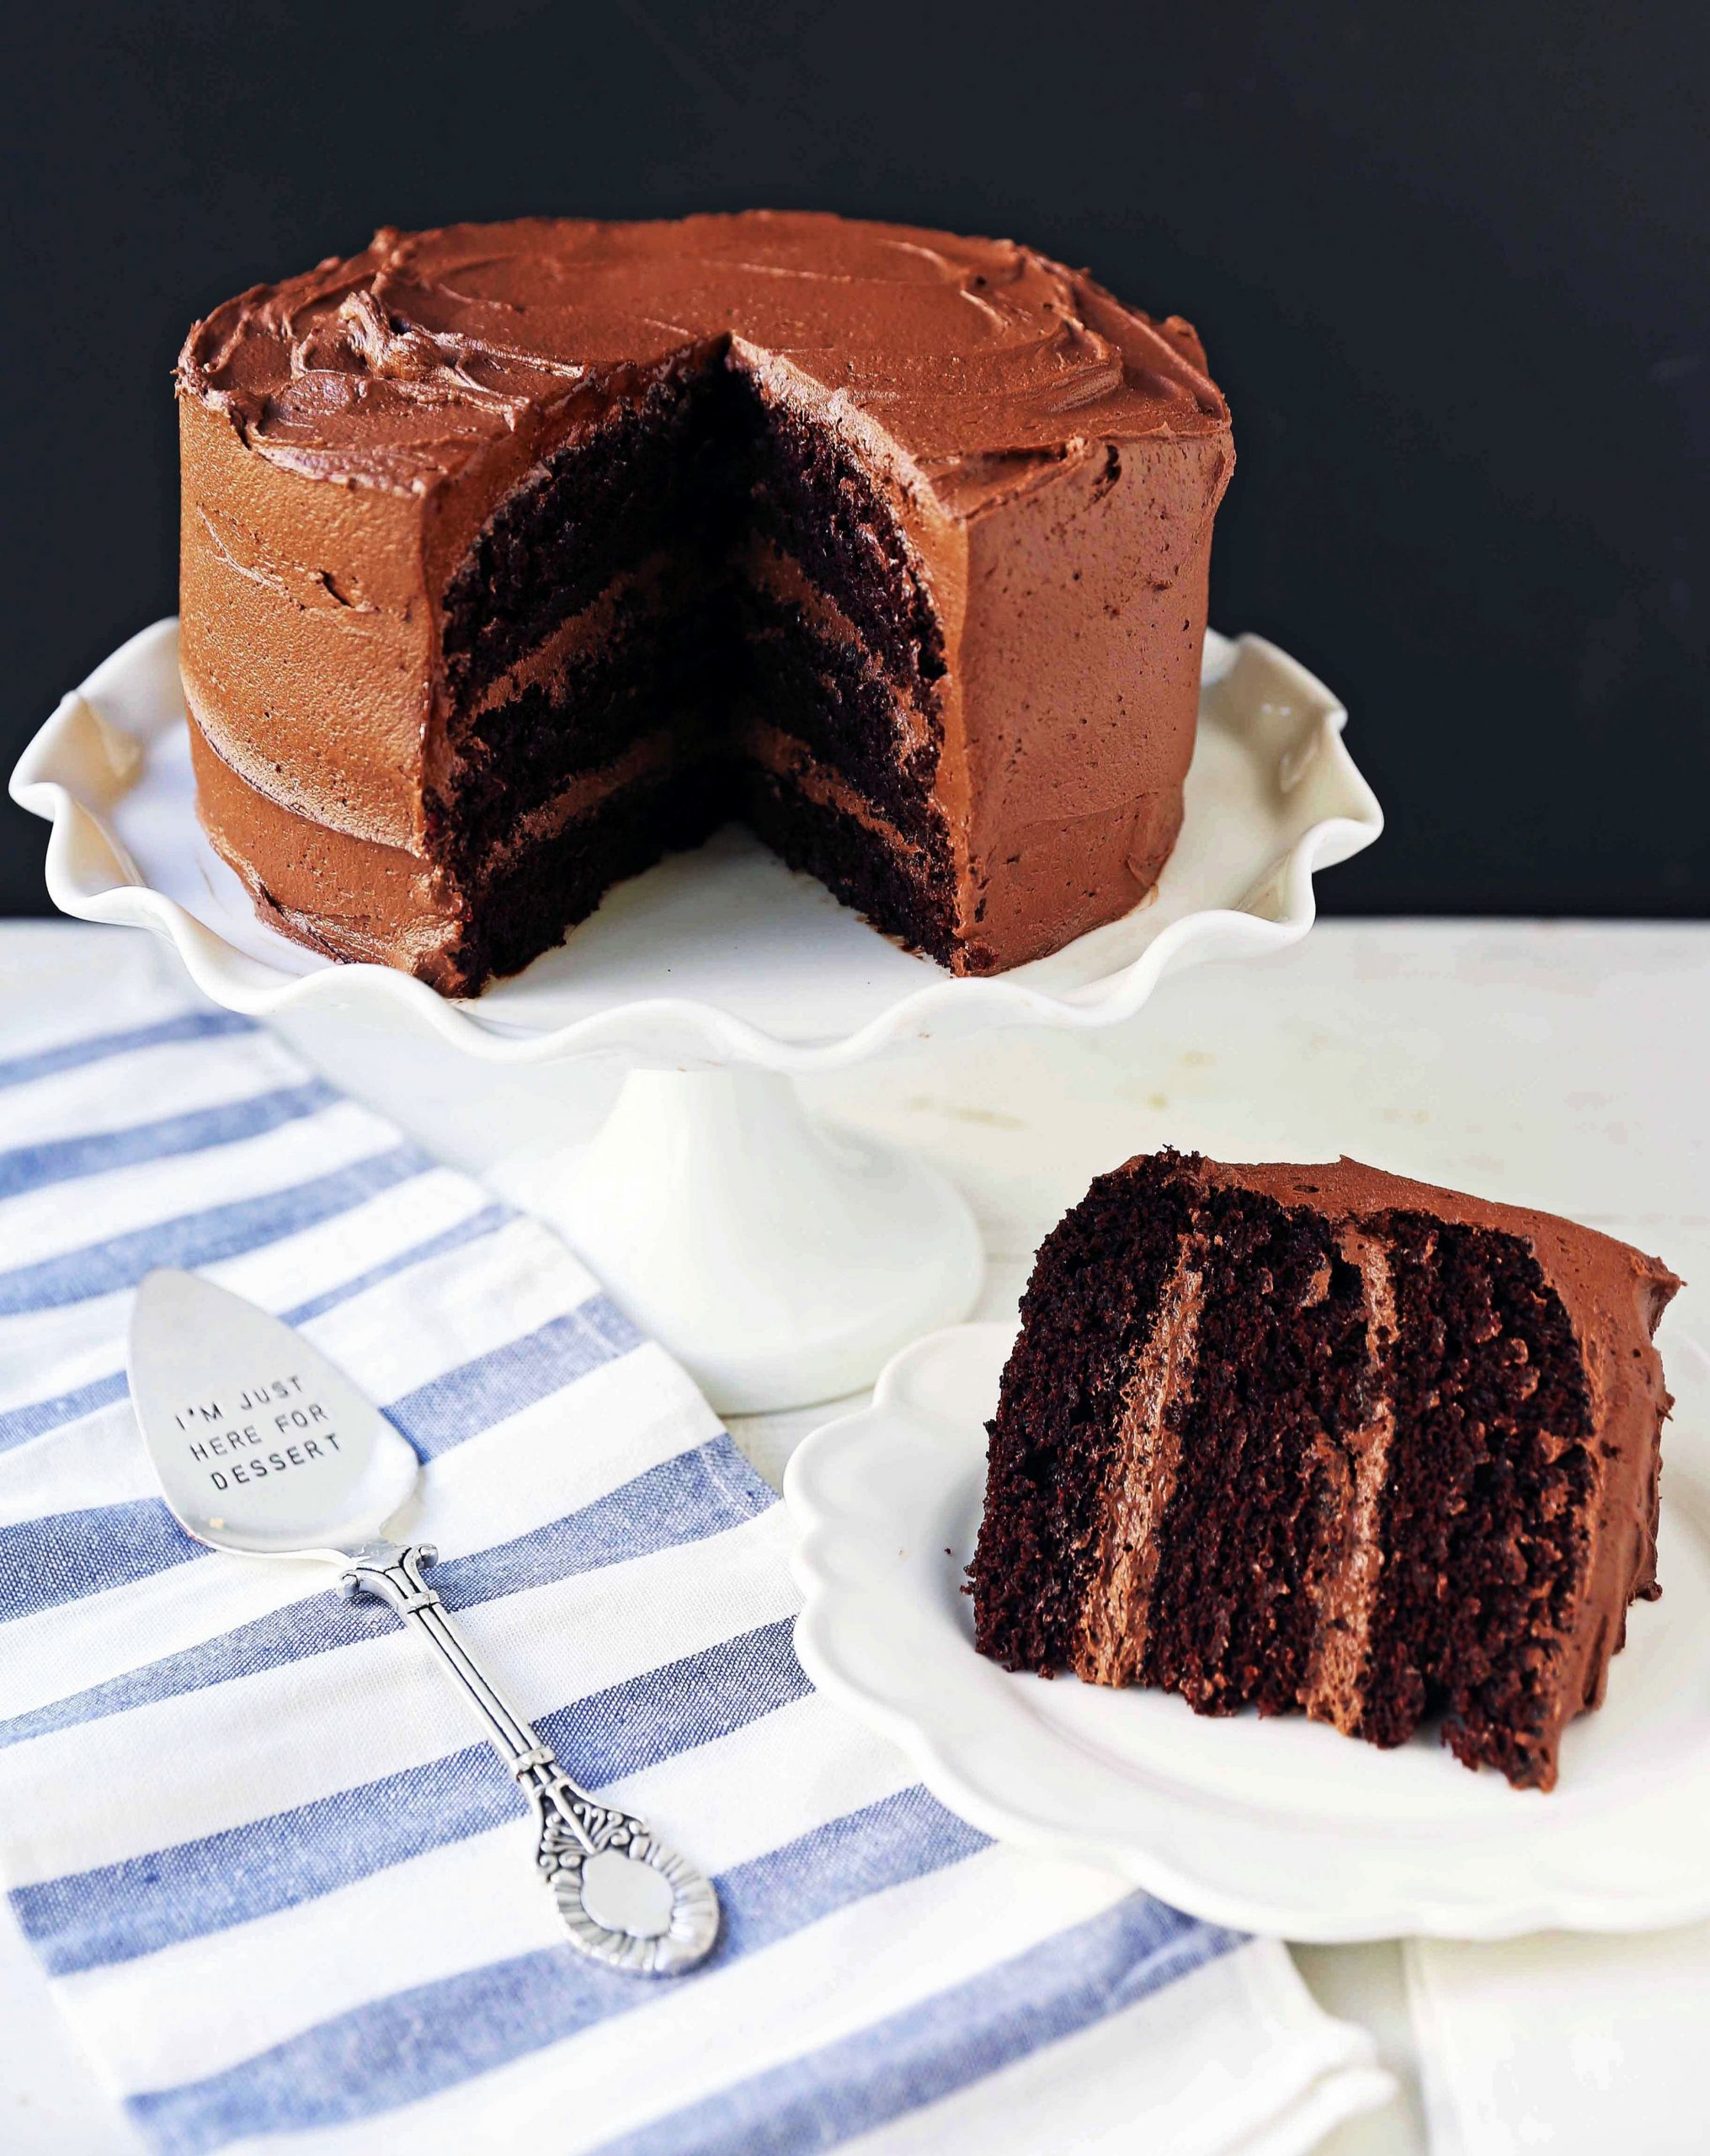 Love at First Sight Chocolate Cake - Recipe Rich Chocolate Cake